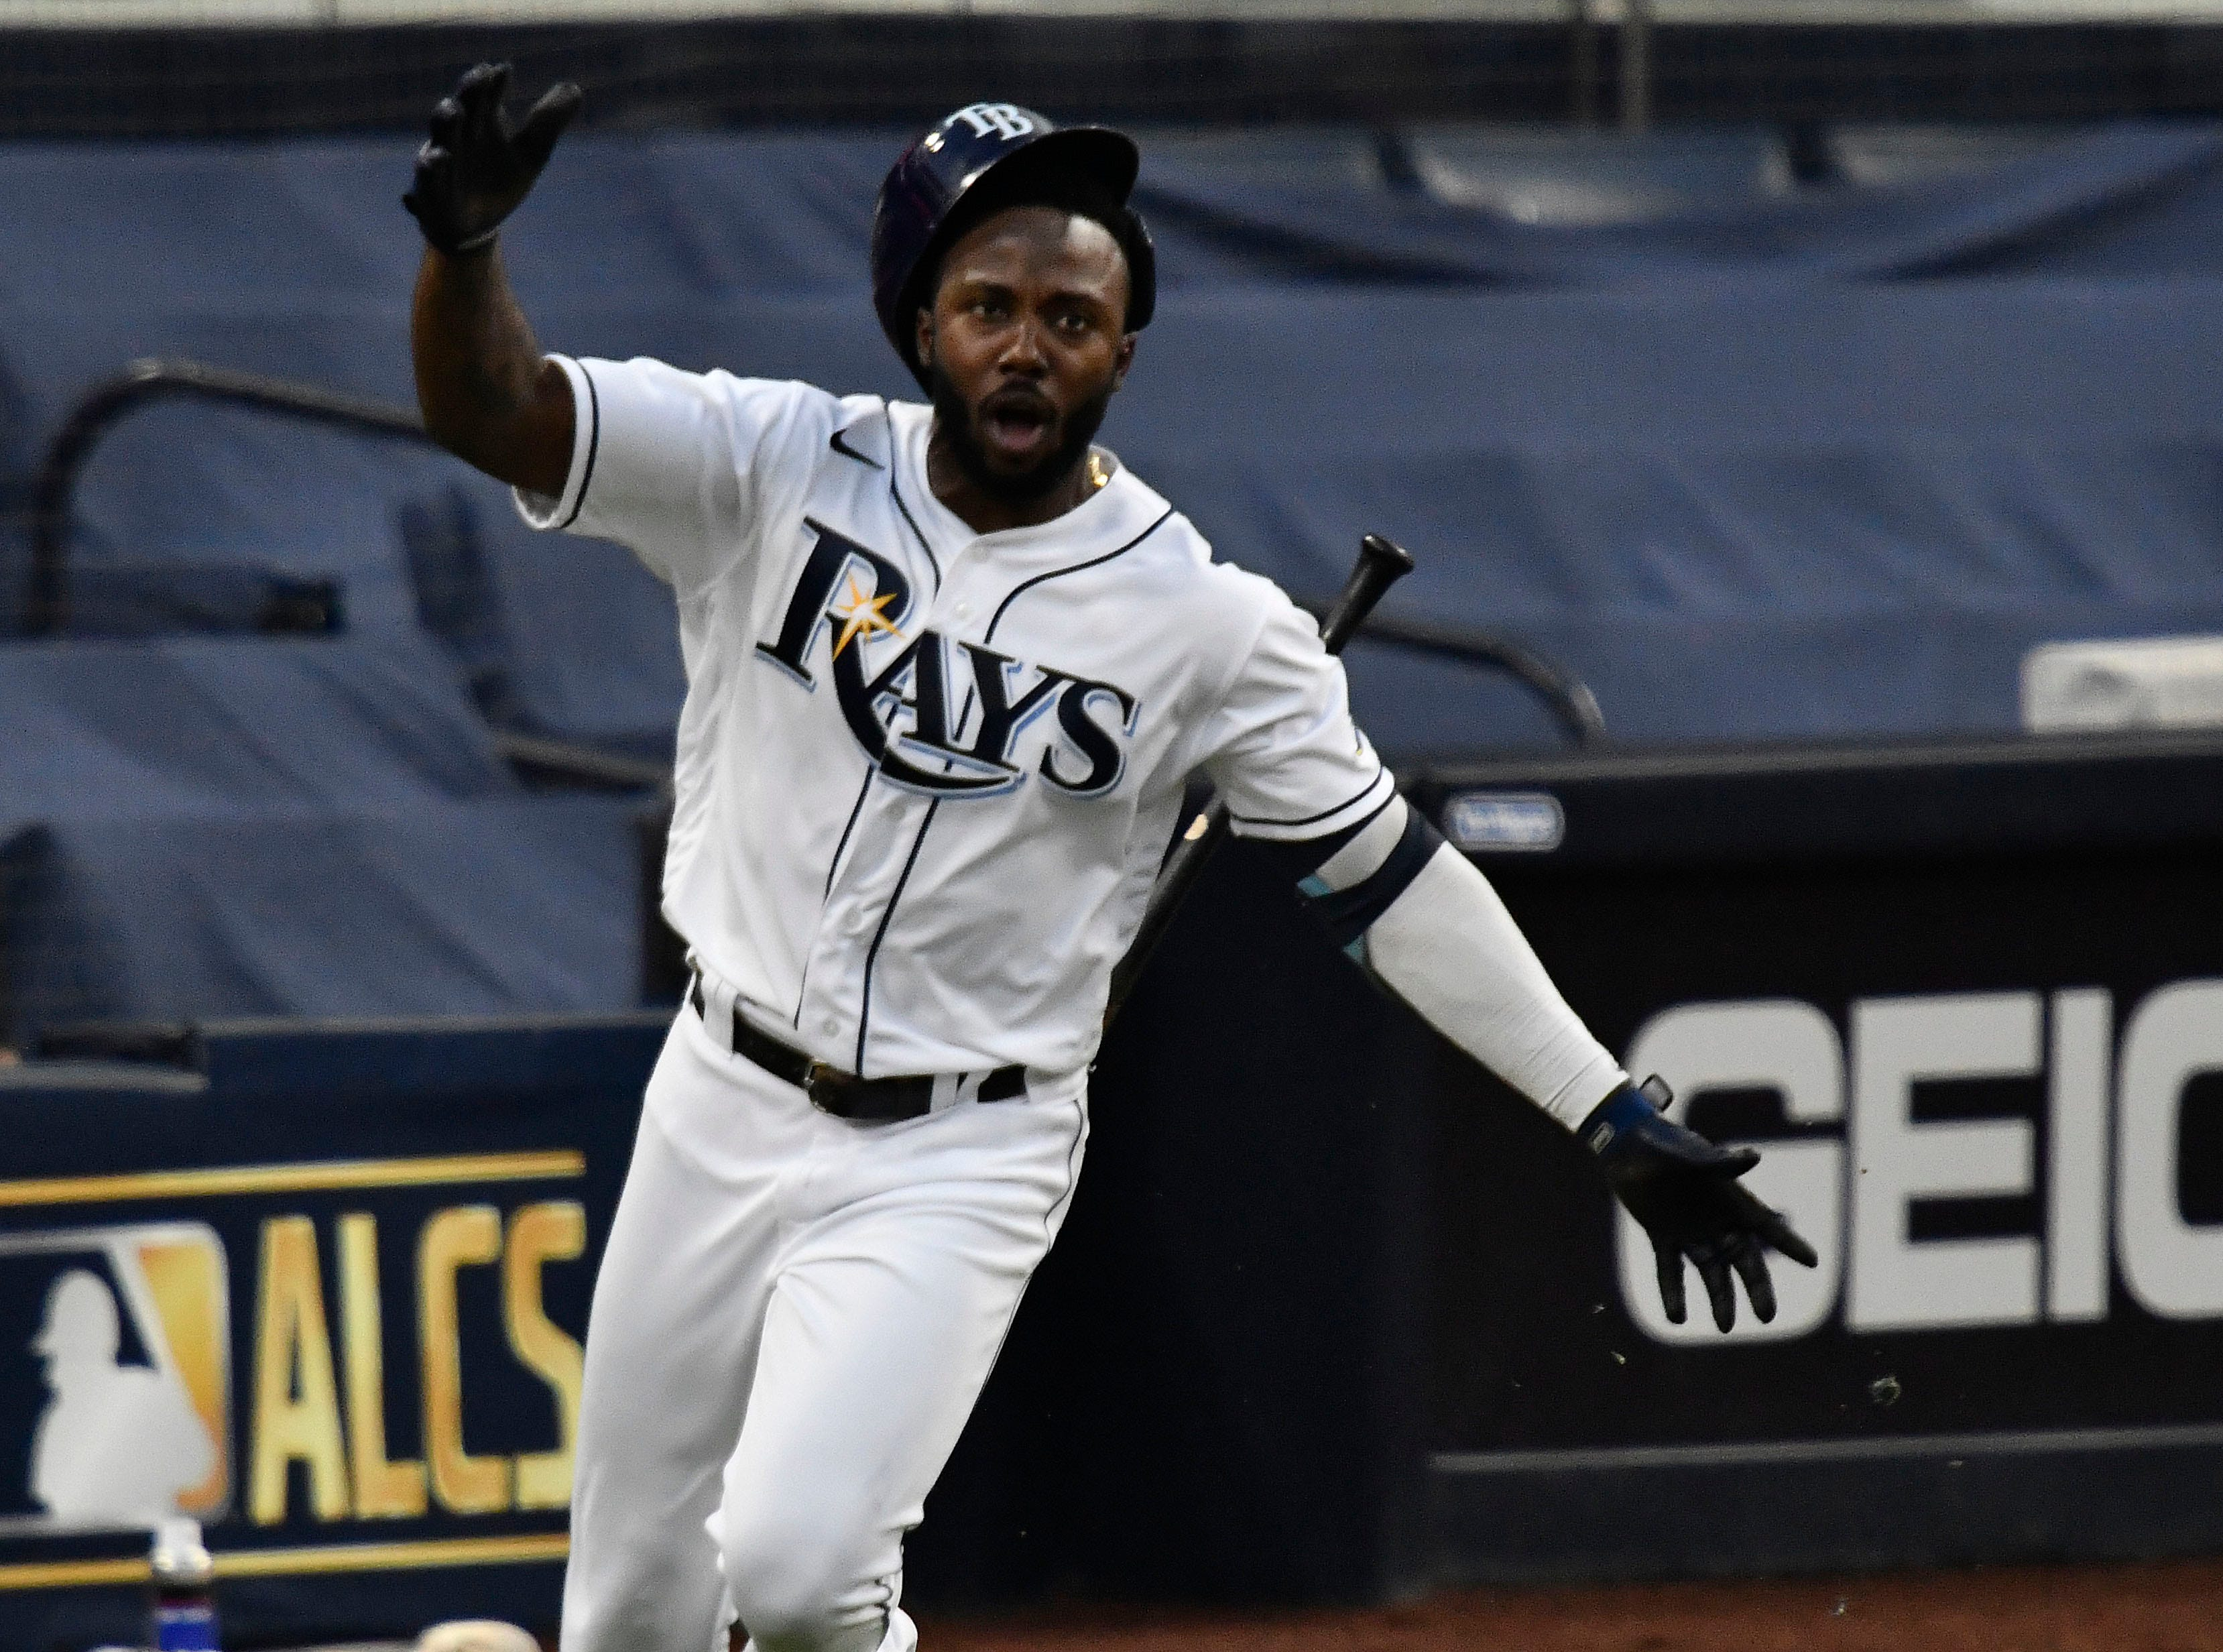 With four ALCS homers, Rays outfielder Randy Arozarena named series MVP